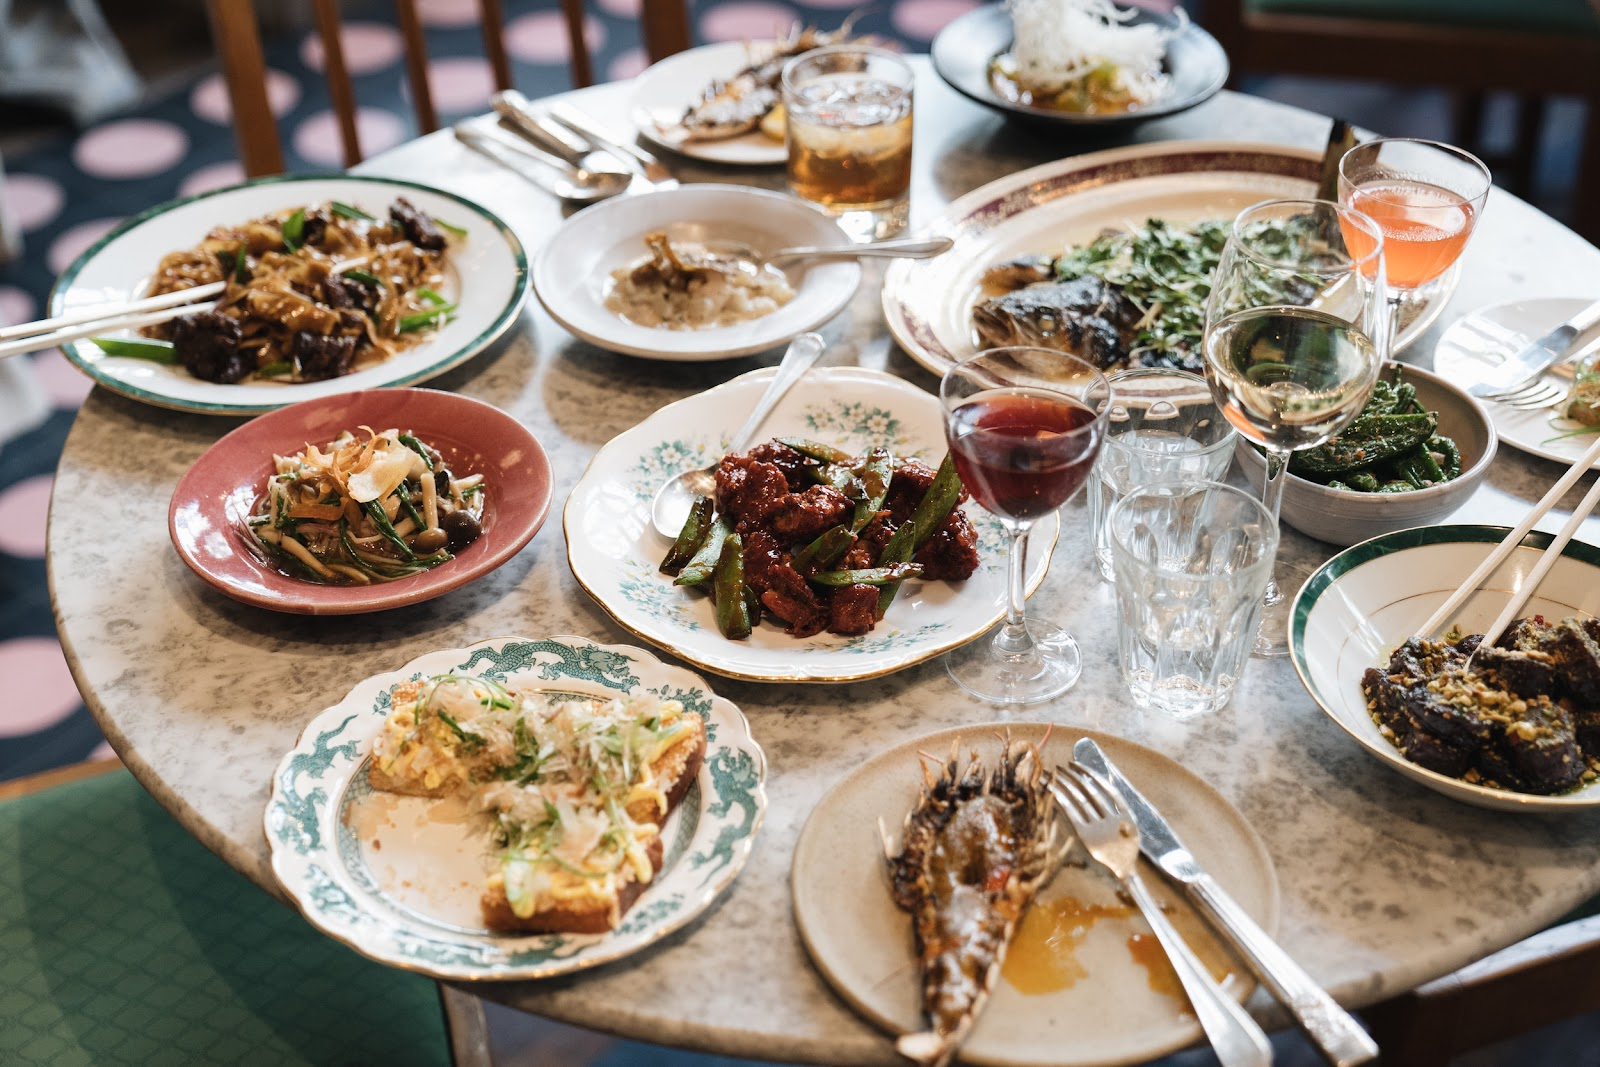 london food guide: top restaurants around neighbourhoods of central london London Food Guide: Top Restaurants Around Neighbourhoods of Central London wnall0ZafsSTHd 2s0UEdOJd7iLBqBhAcIyuHi9e4aWCrkfFCW1OHU4X zTZZdpf6XepiXCXZI5emCOD4kKzgJGs7cZuwntwfKm81ESZ84SMI0bX8iwB4eHBmjmoR O34aFk7qhj